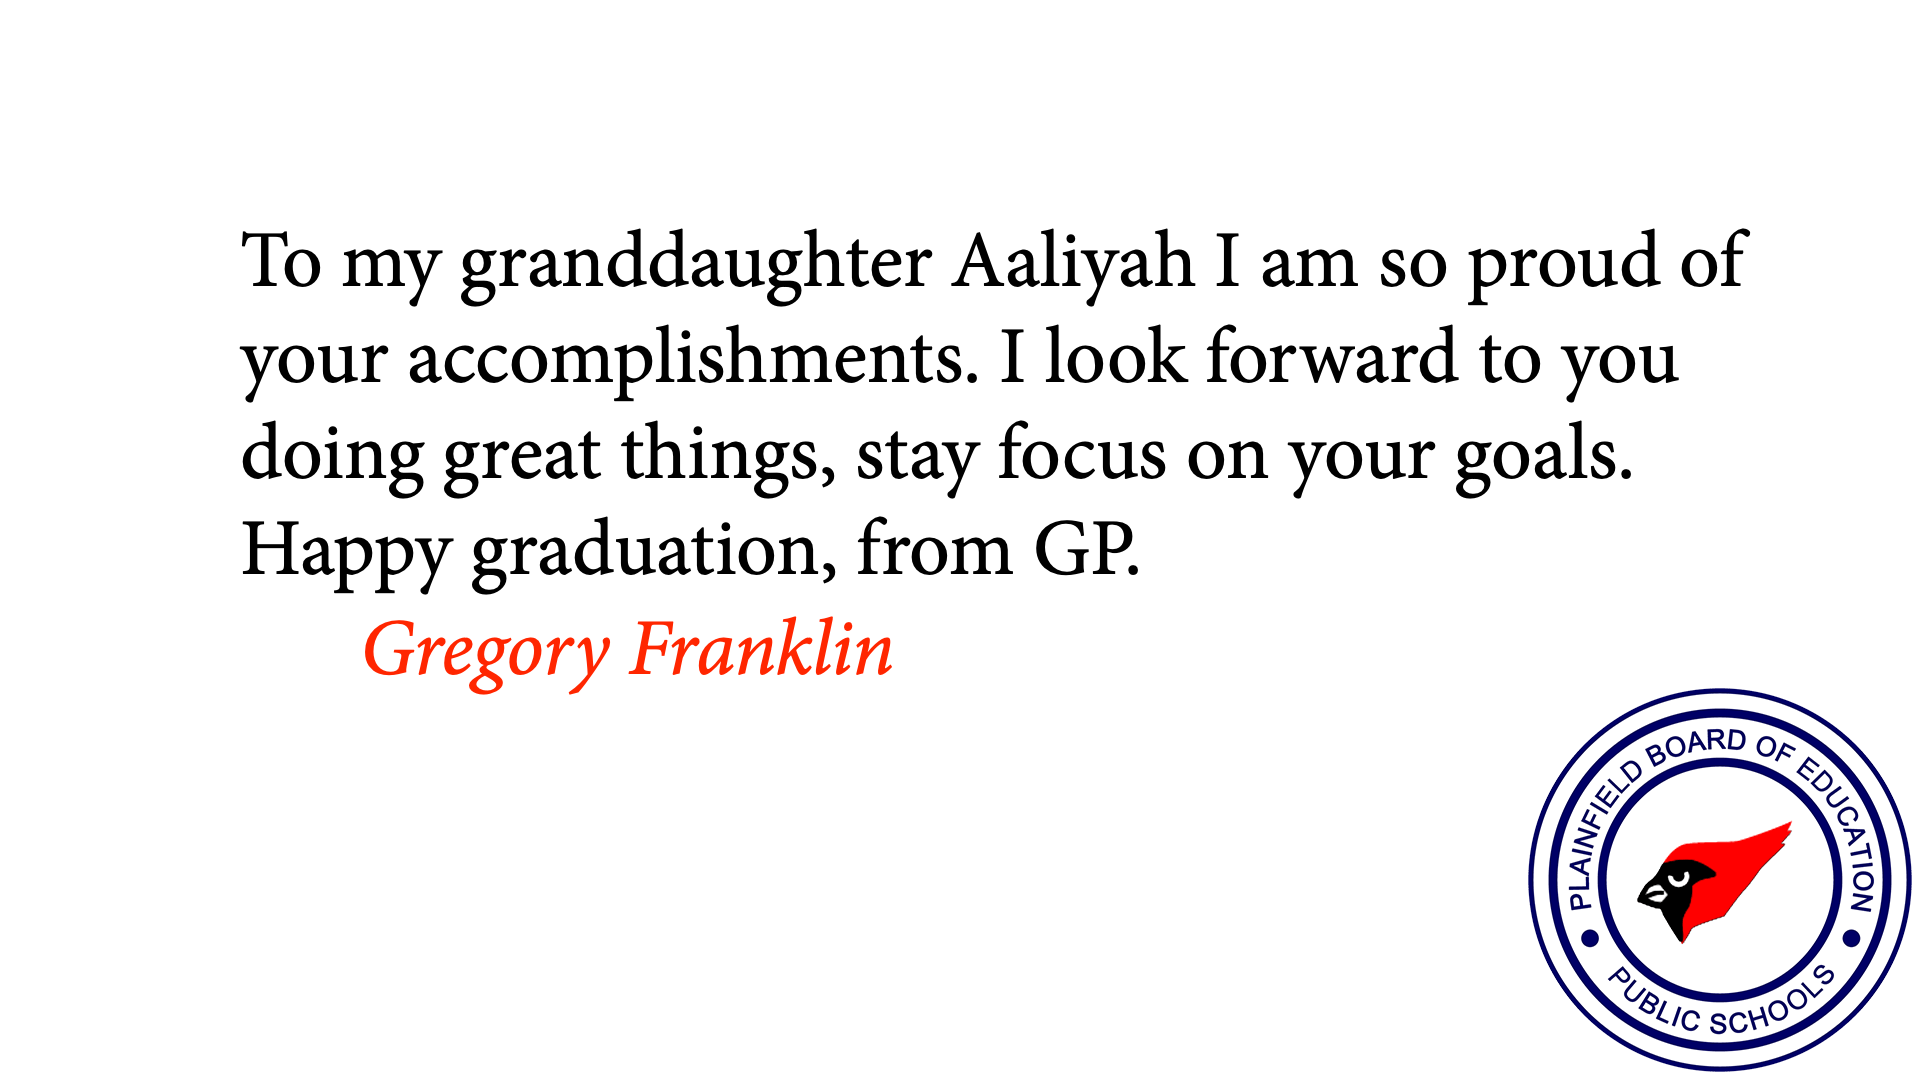 tbi_aaliyah-mone-townsend_501.png